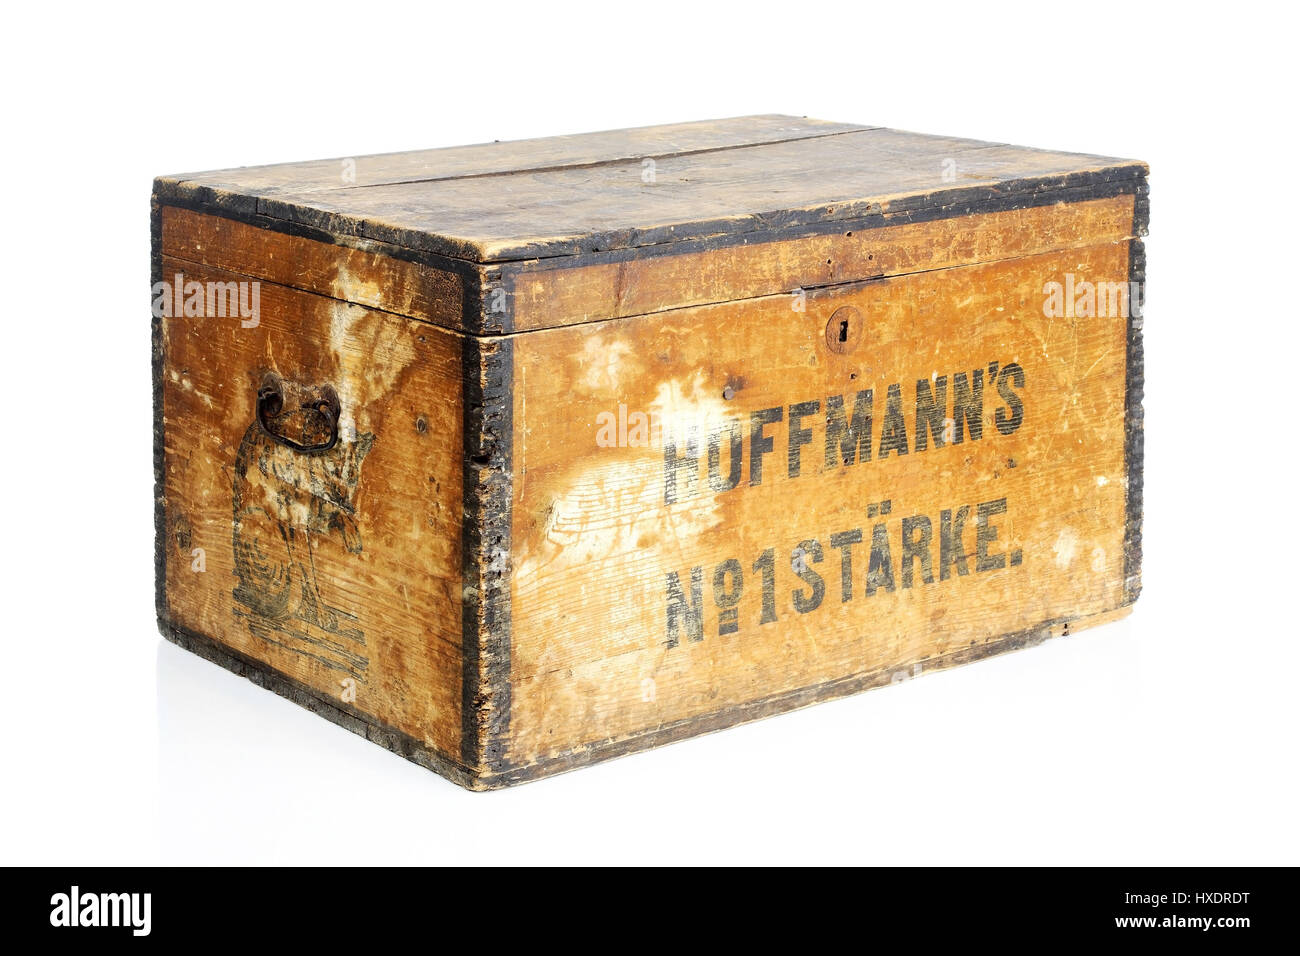 Alte Holzkisten wooden box with an advertising label wooden box with in